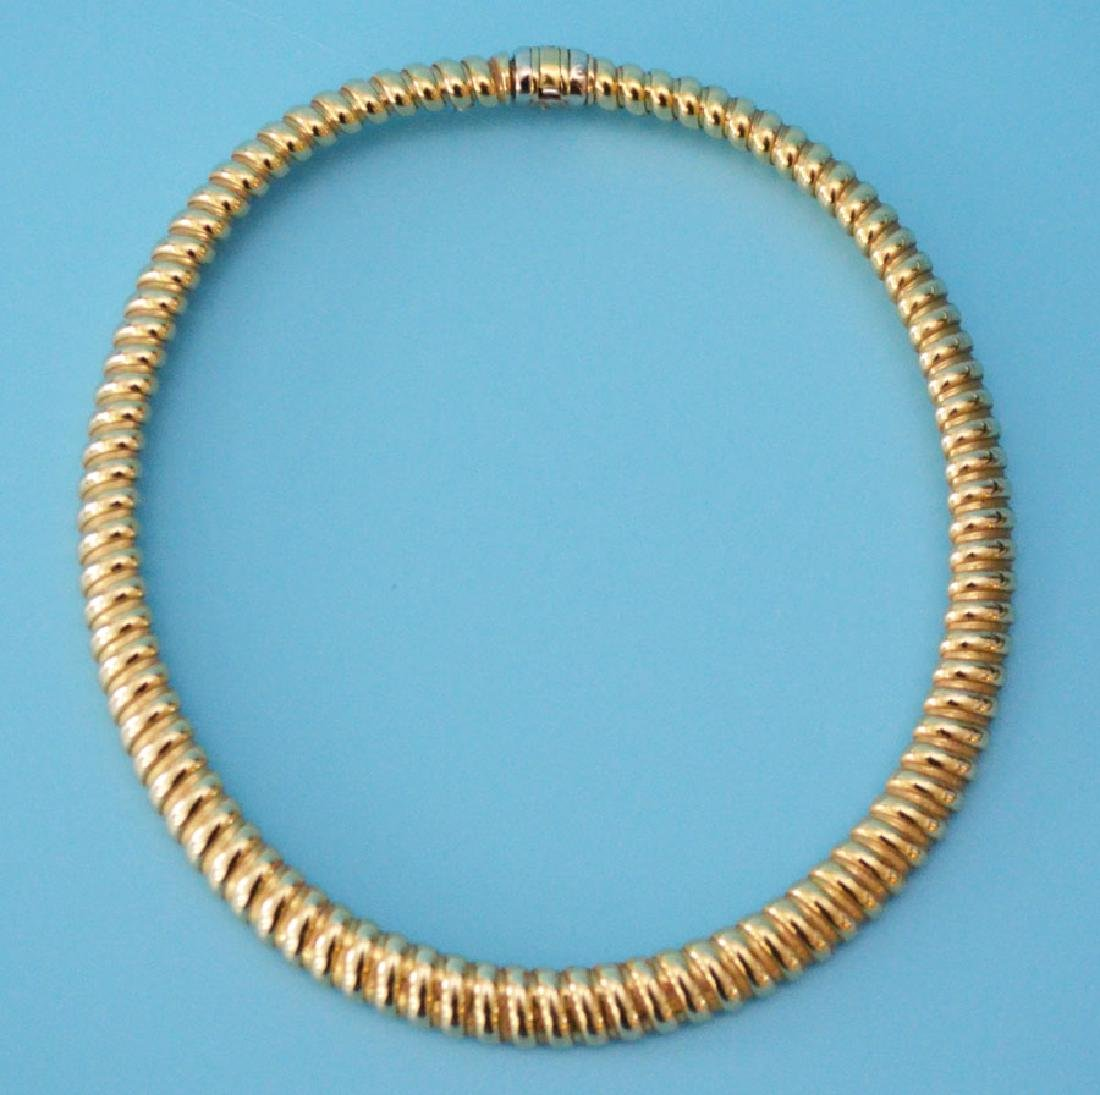 Bassani 18k Gold Choker Necklace